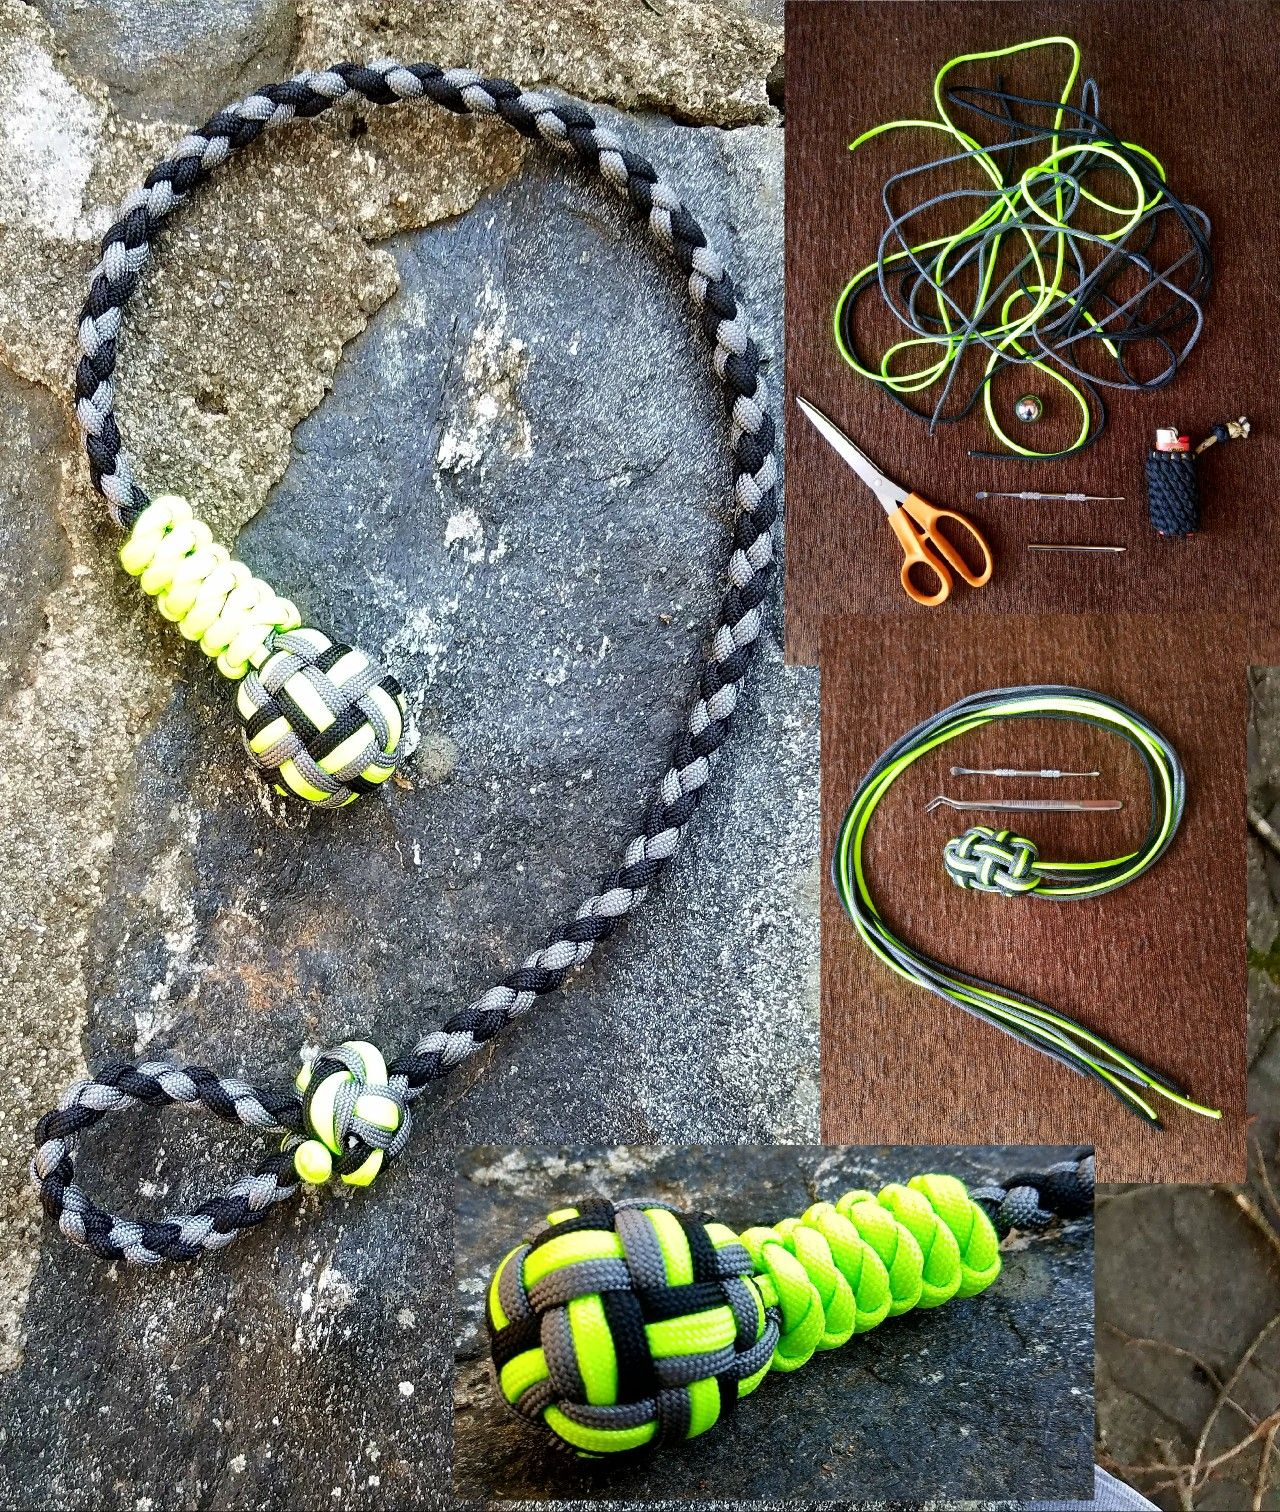 1 Inch Ball Bearing Monkey Fist With 2 Foot Lanyard With Images